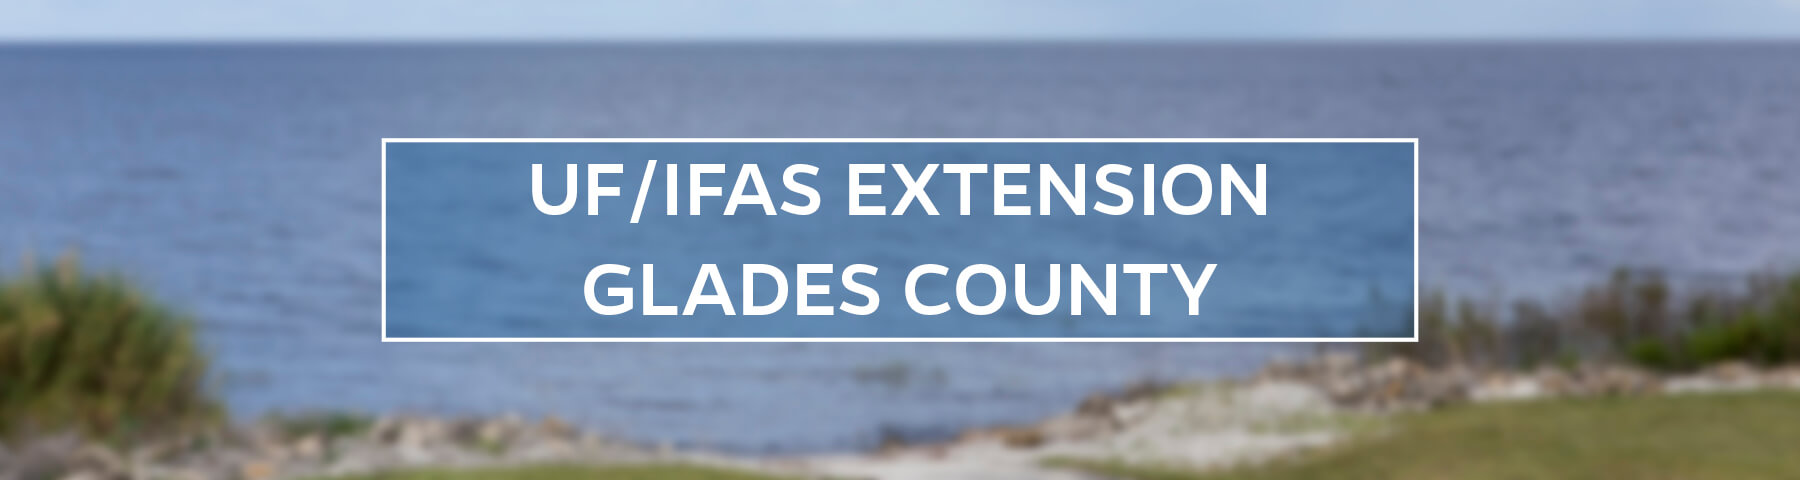 UF/IFAS Extension Glades County